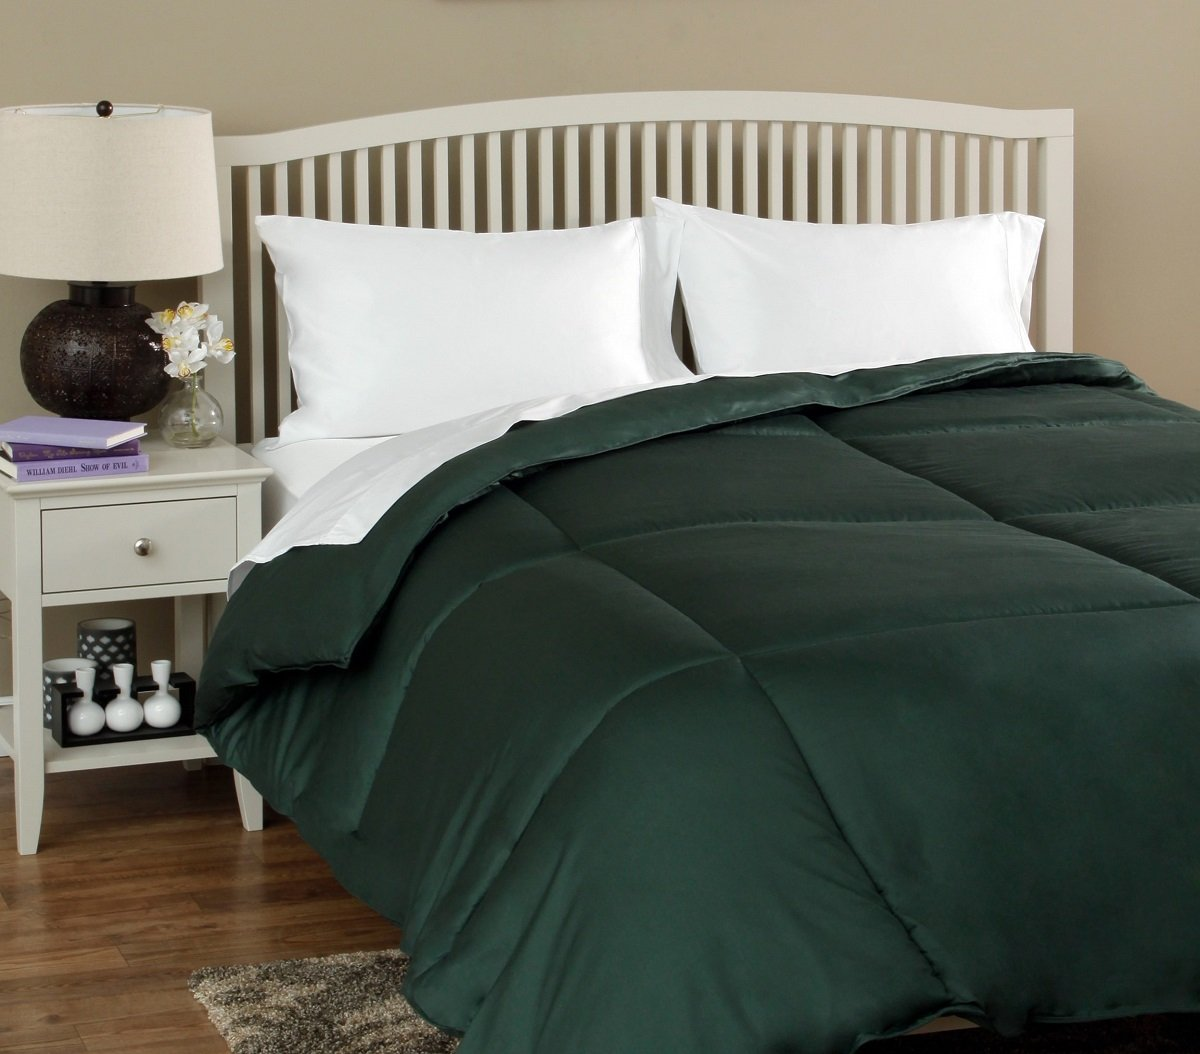 Gorgeous Home DARK GREEN Reversible Down Alternative Comforter Bed Cover Diamond Stitched Solid Plain 2/3PC Set Plush Microfiber Fill Quilt for All-Season (QUEEN)